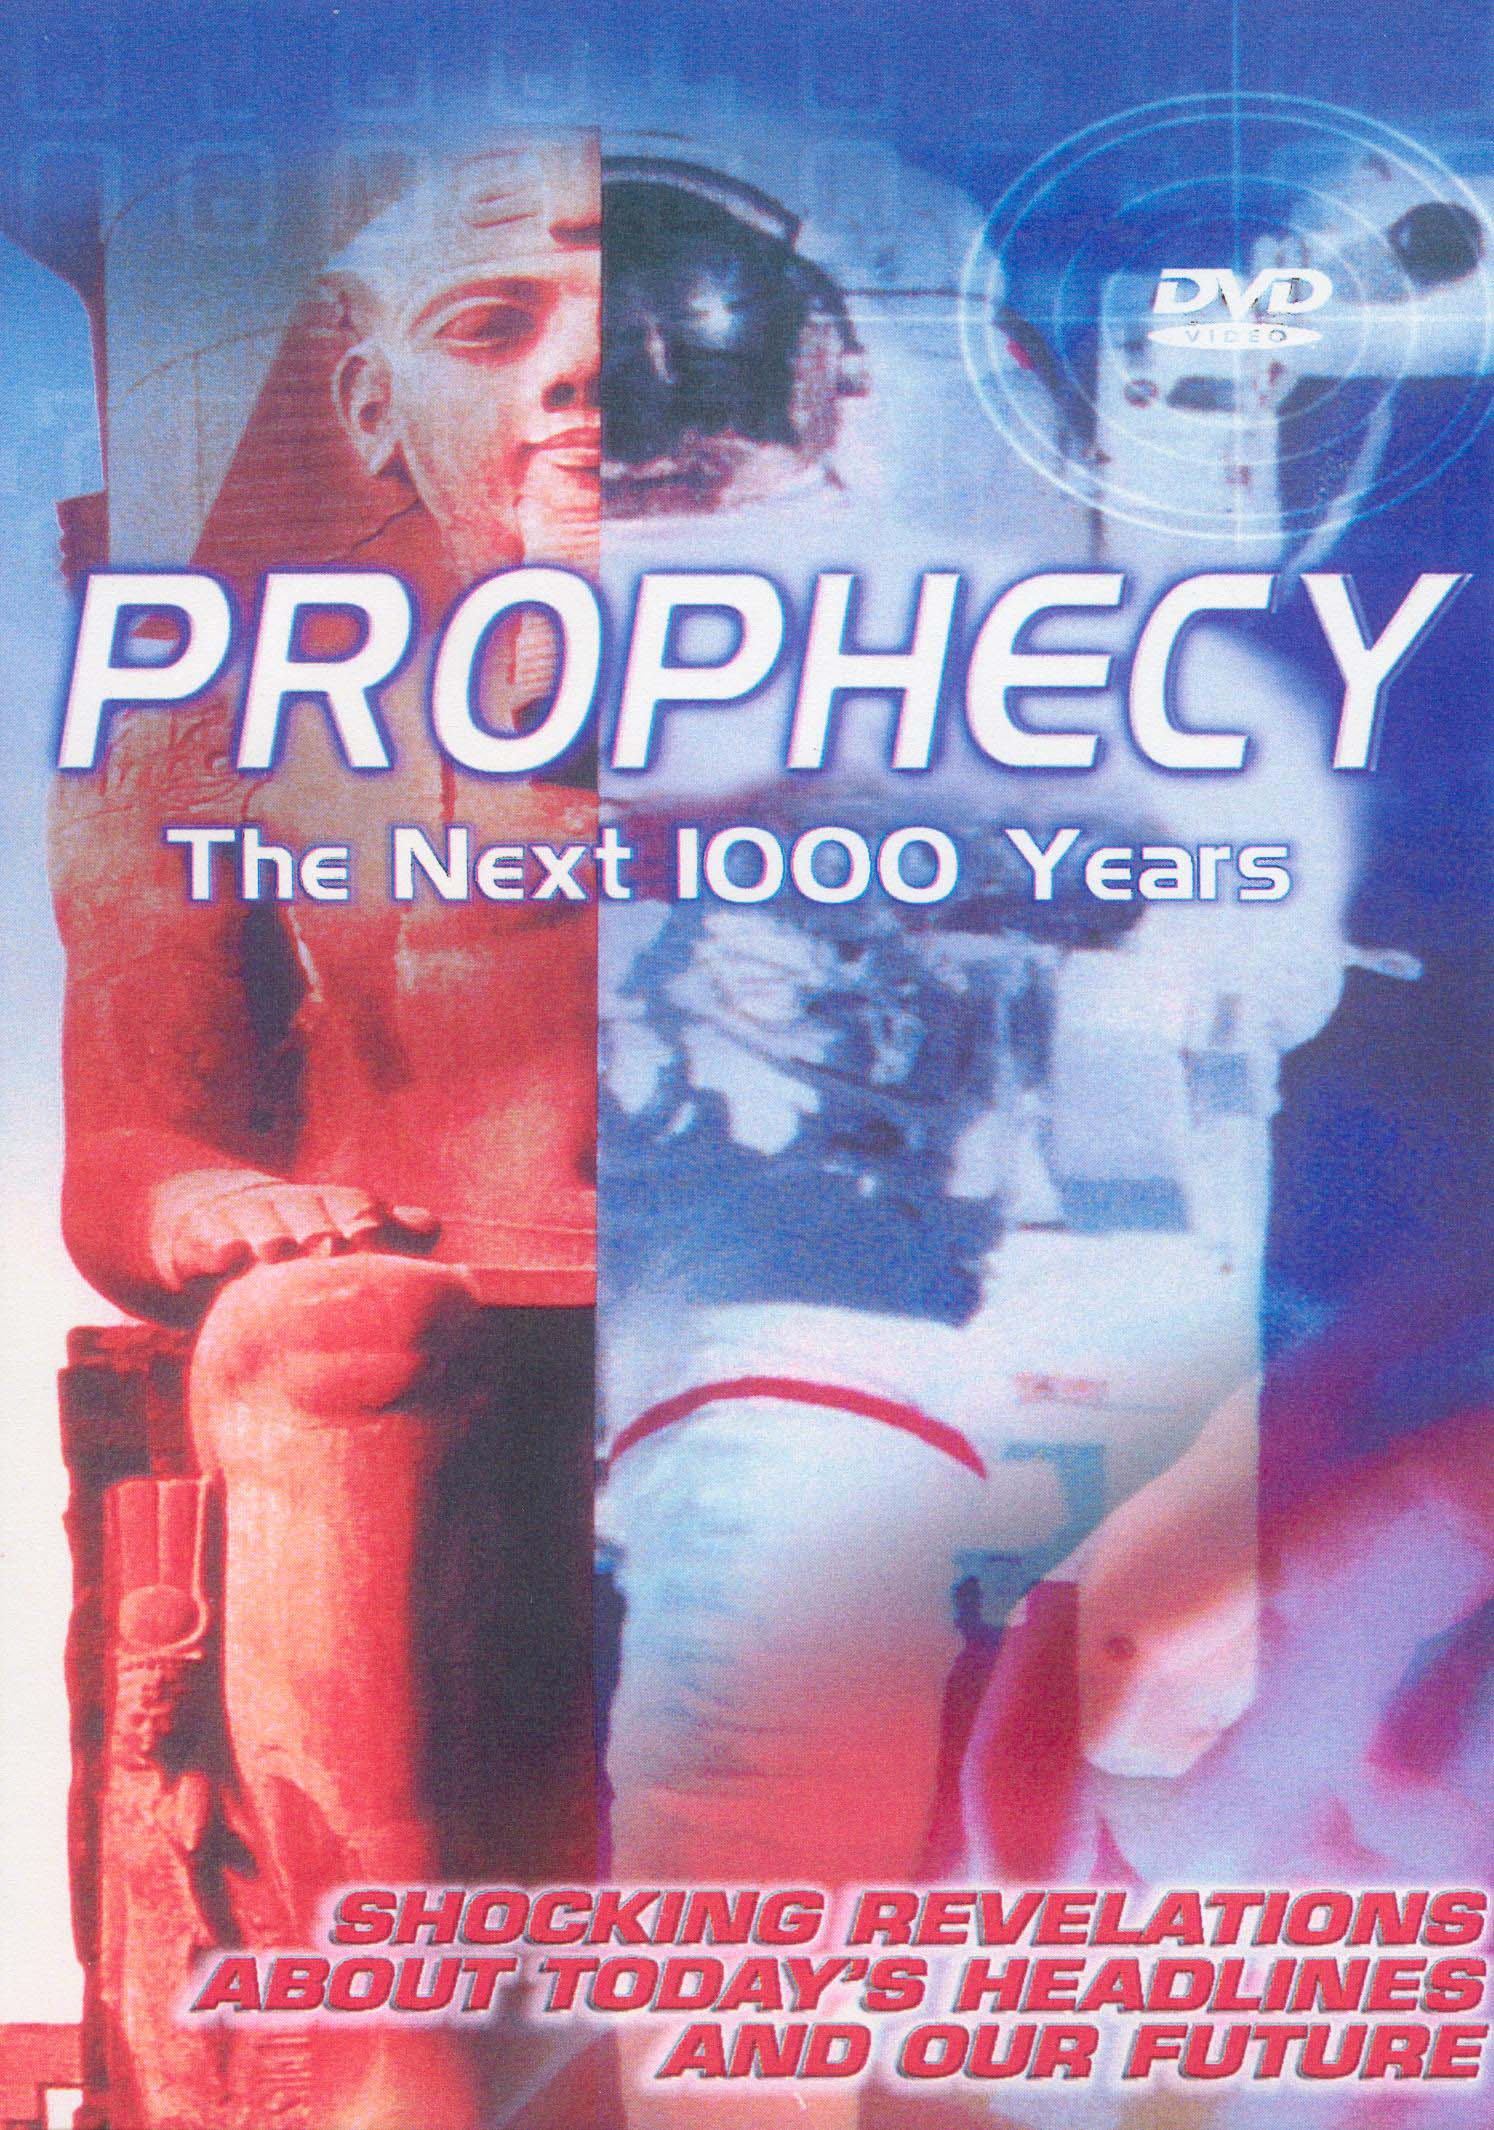 Prophecy: The Next 1000 Years